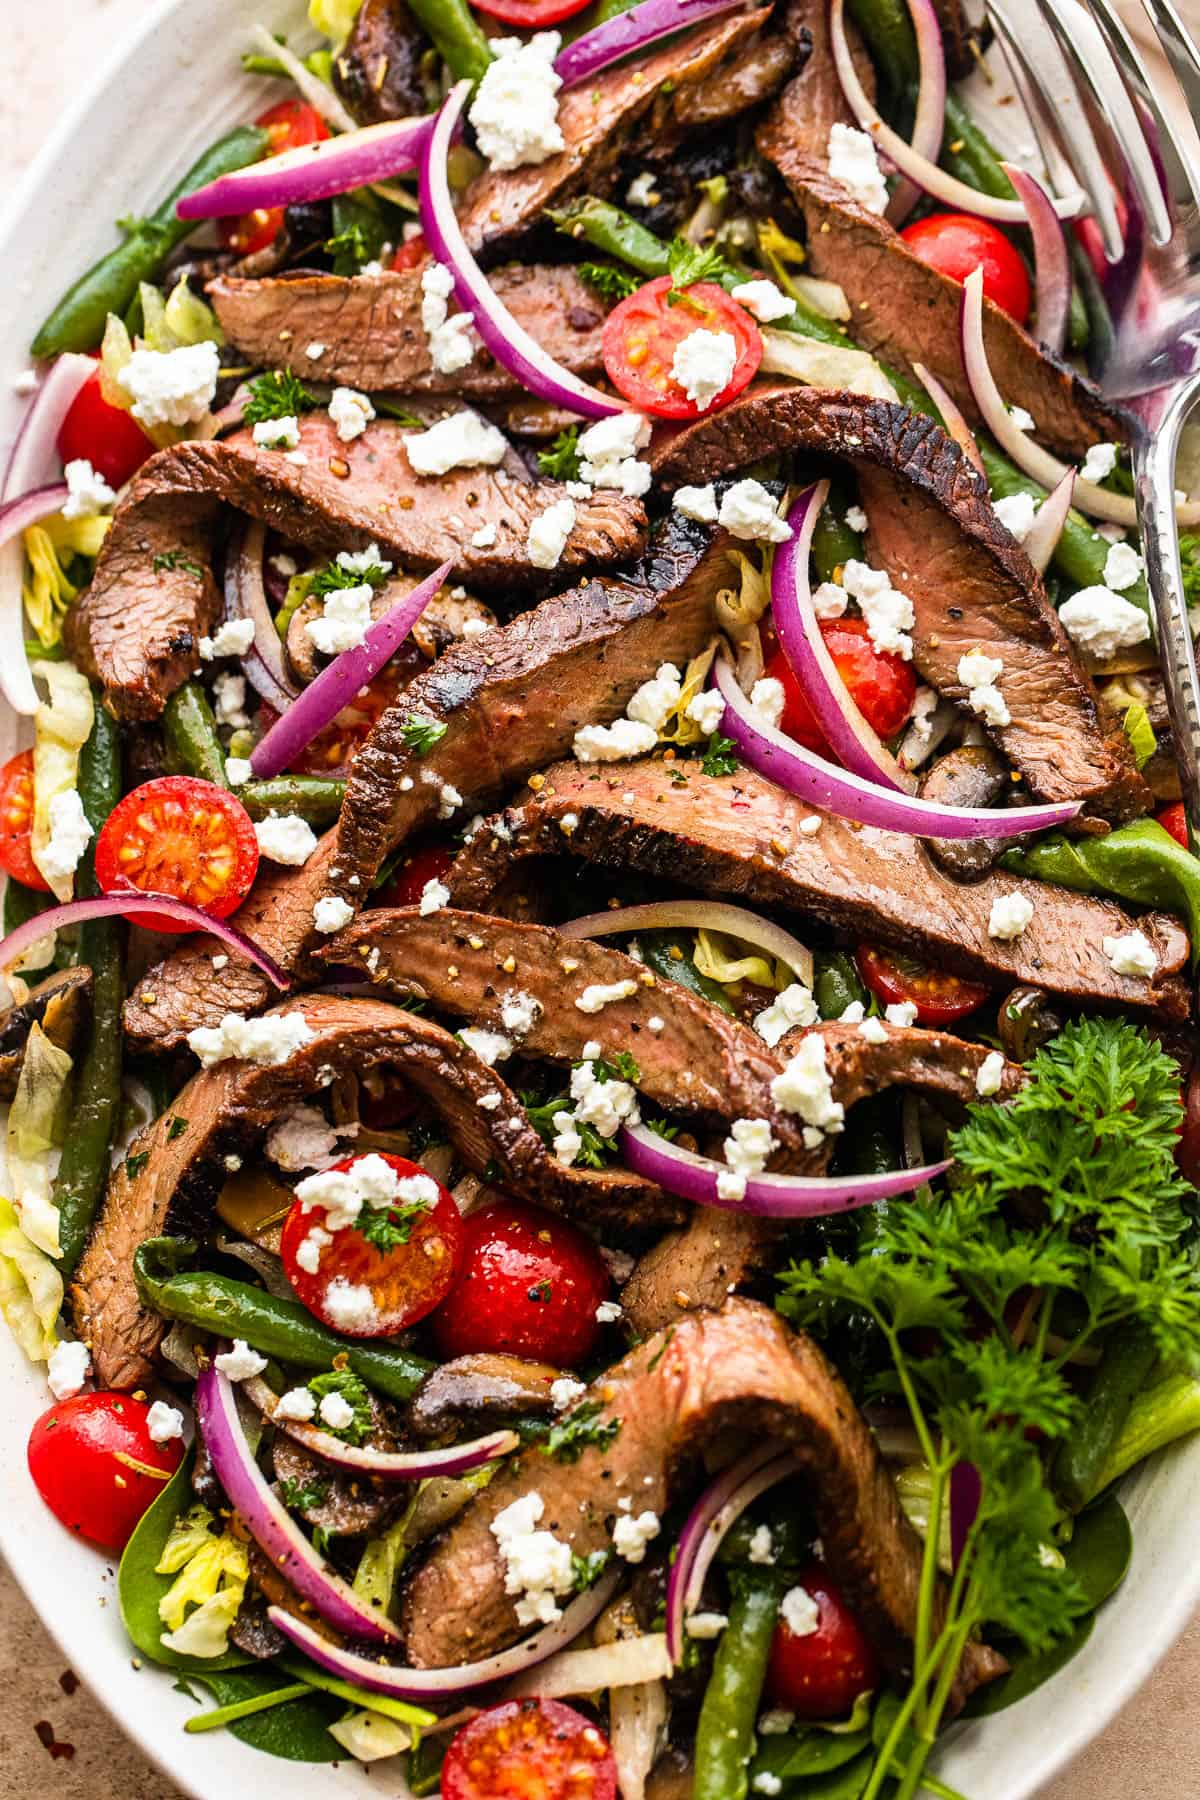 Steak Salad on a long plate topped with cheese crumbles, tomatoes, and mushrooms